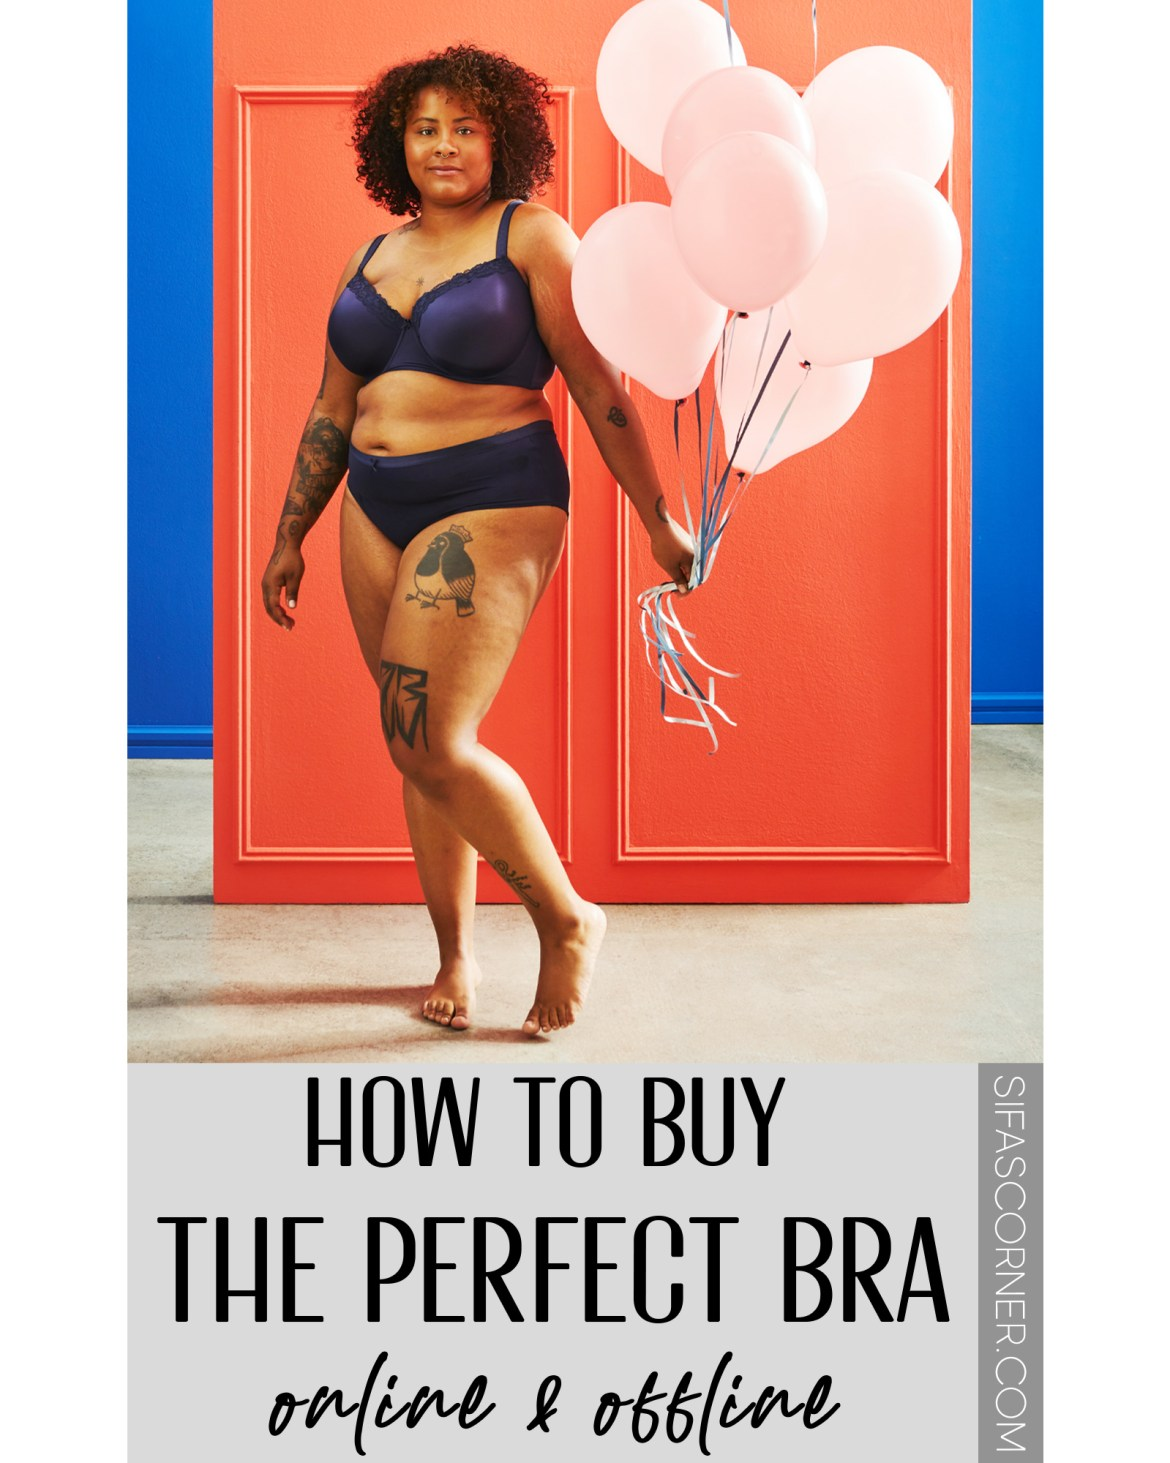 how to buy the perfect bra